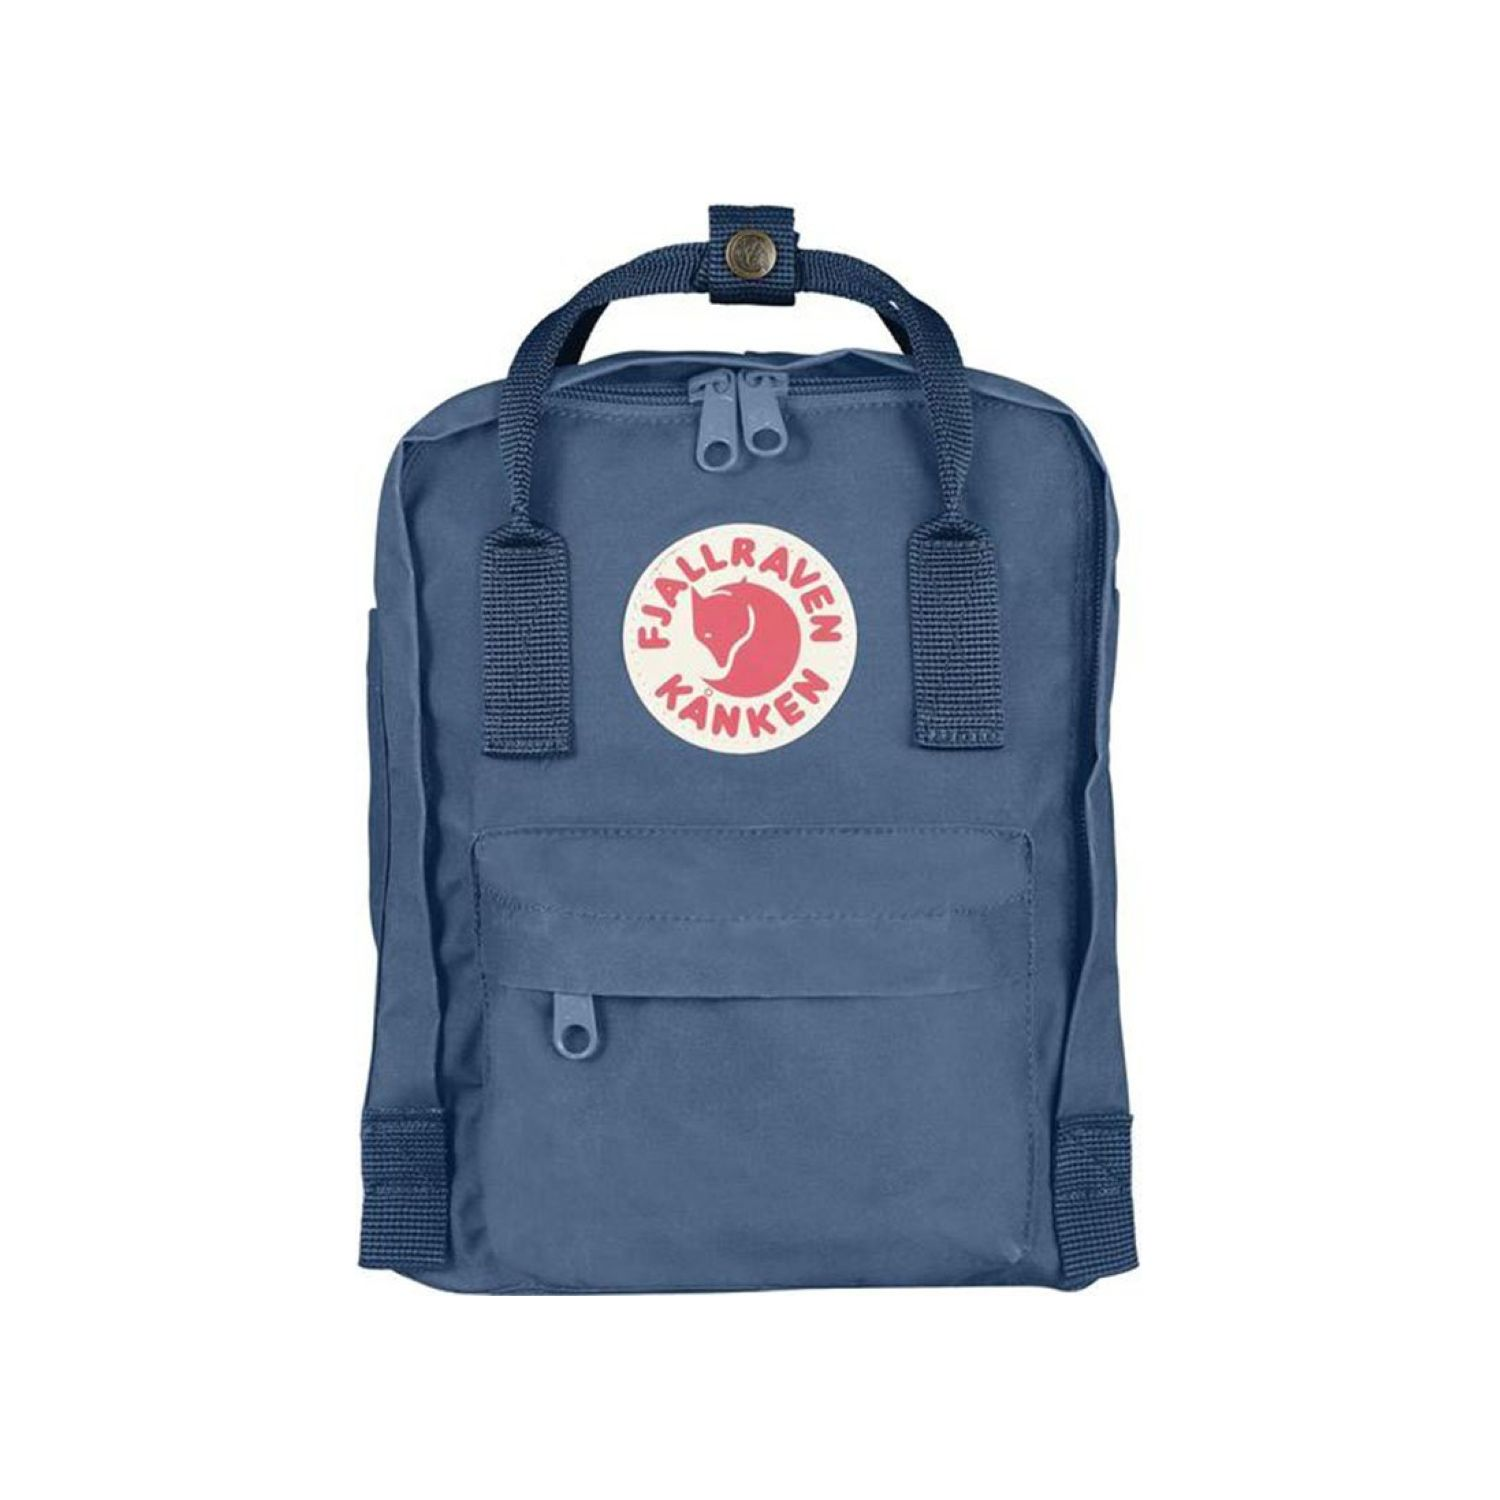 eeaac816558 Buy Fjallraven Kanken Mini - Blue Ridge in Singapore & Malaysia ...